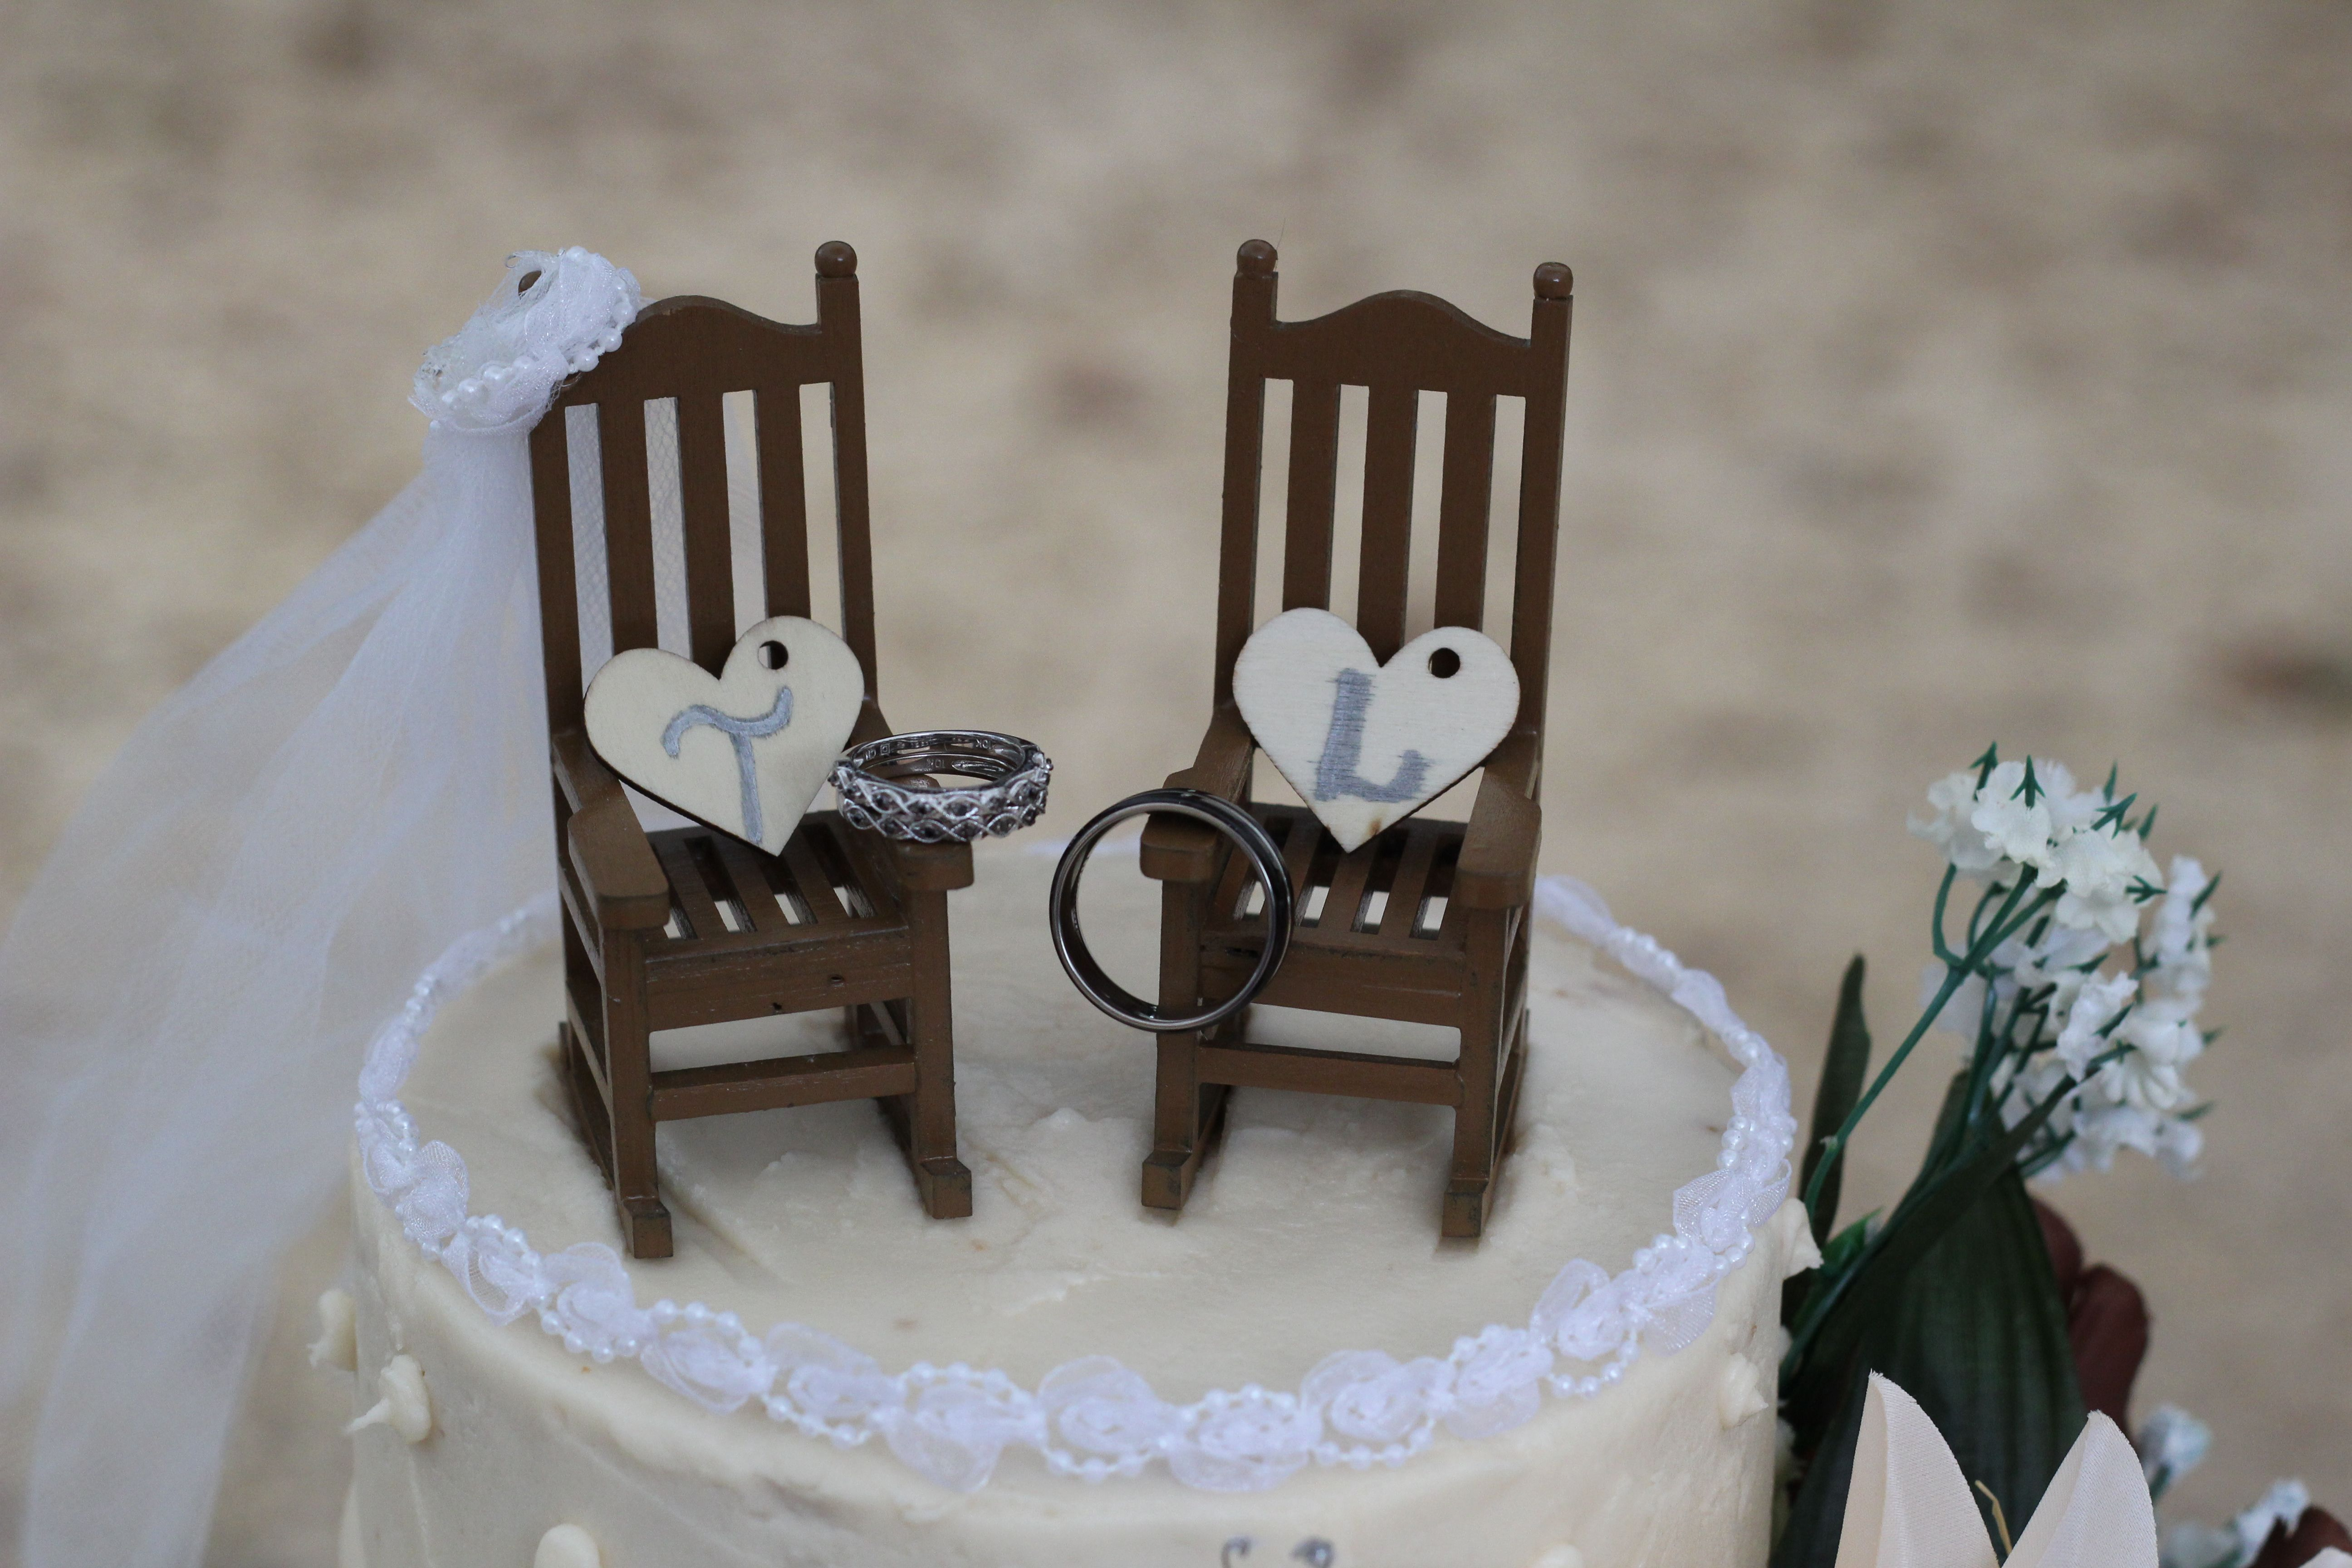 Find This Pin And More On A Rustic Wedding At The Neshoba County FairGrounds Pavilion Rocking Chairs As Cake Topper